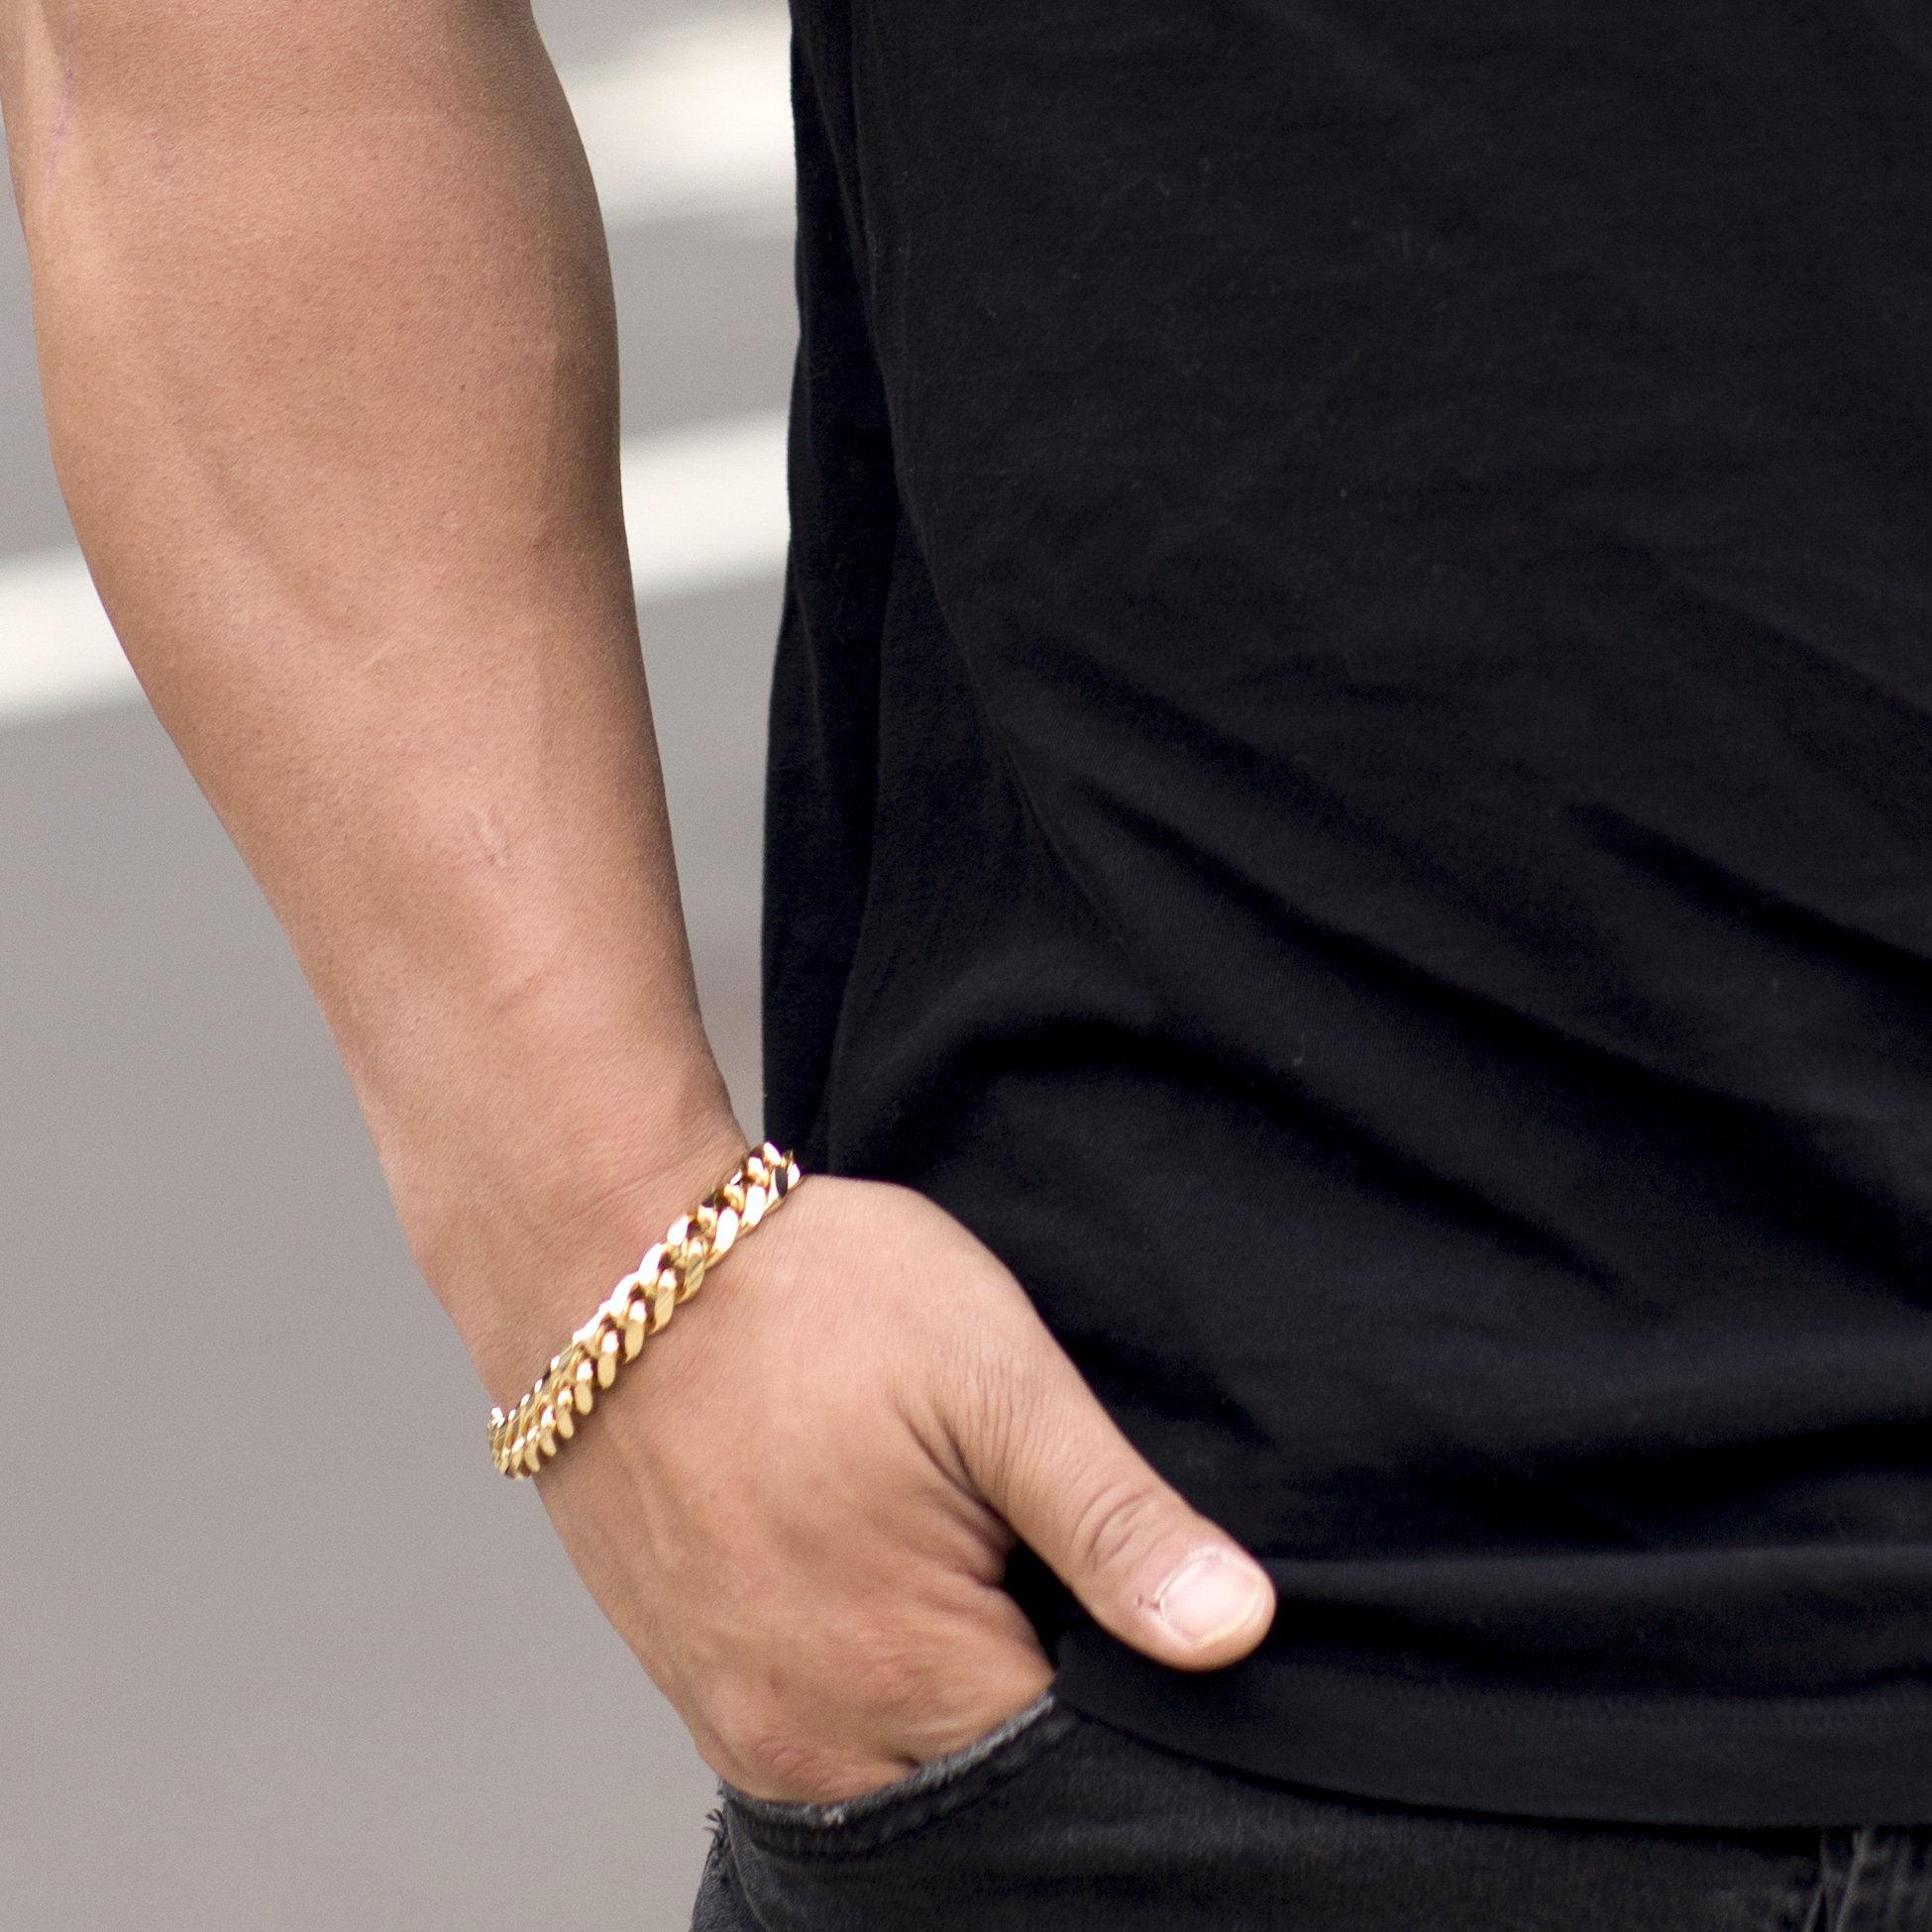 Lifetime Jewelry Cuban Link Bracelet 11MM, Round, 24K Gold Overlay Premium Fashion Jewelry, Guaranteed Life, 8 inches by Lifetime Jewelry (Image #2)